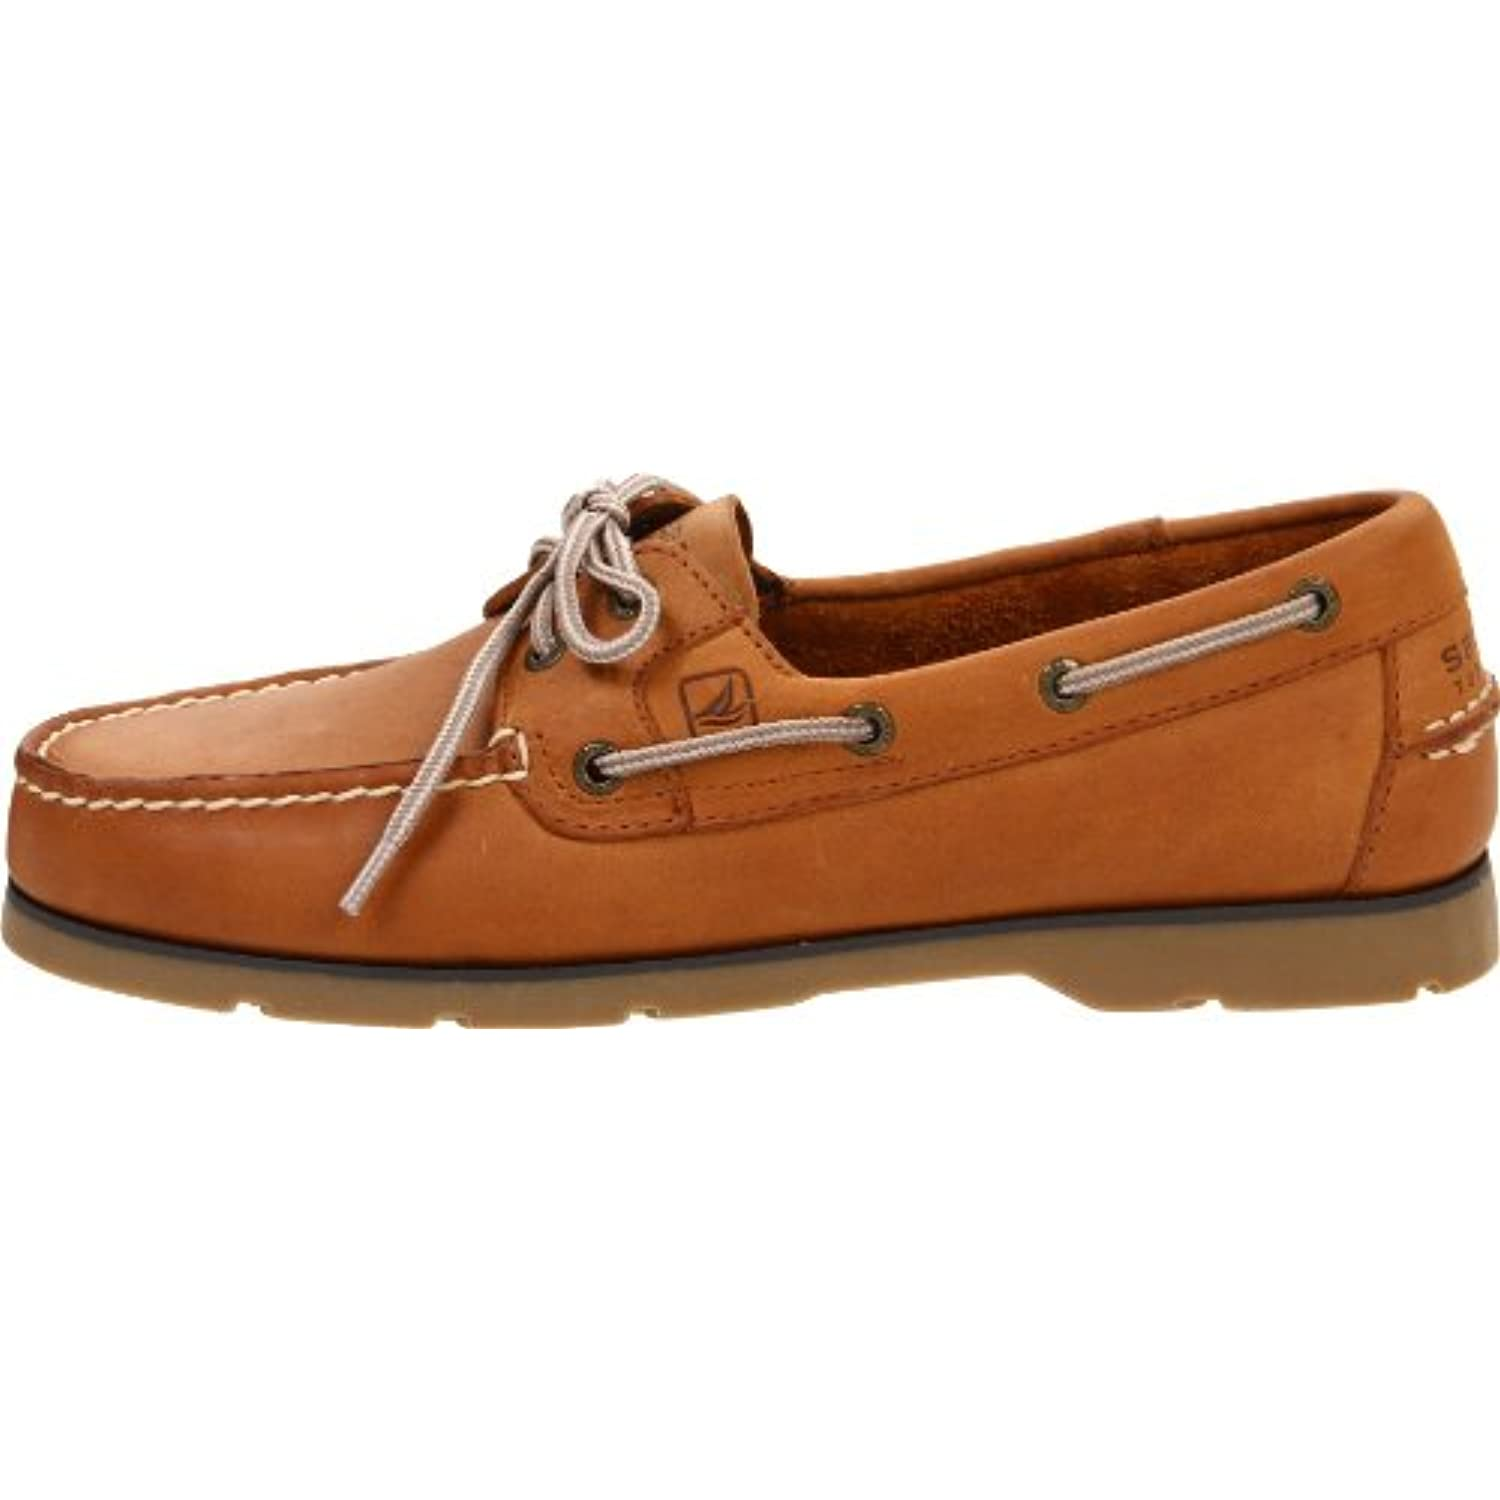 Sperry Top Sider Leeward 2-Eye Hombre US 9 Beis Zapatos del Barco hPKyQ